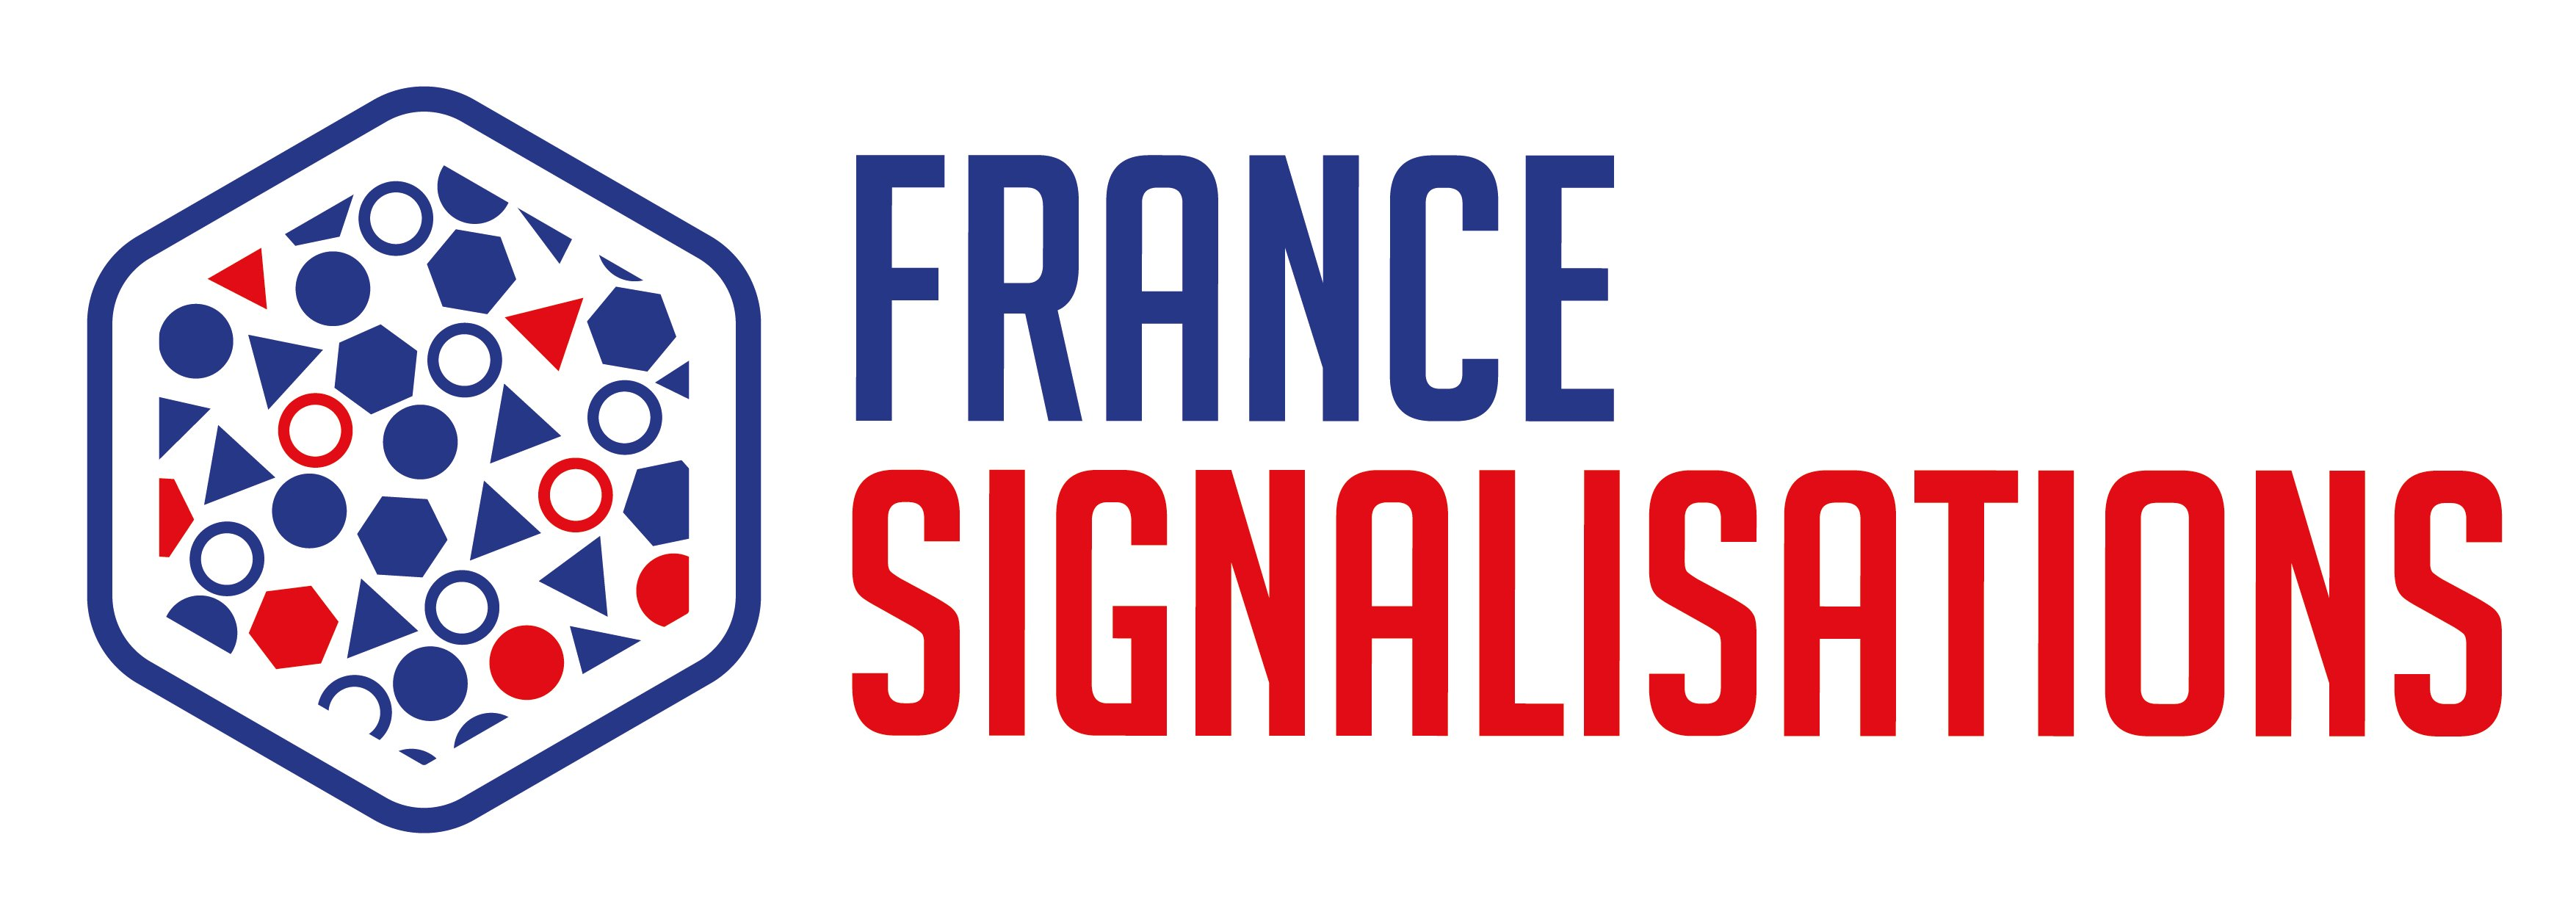 Ugau France Signalisations : le diagnostic de la signalisation verticale